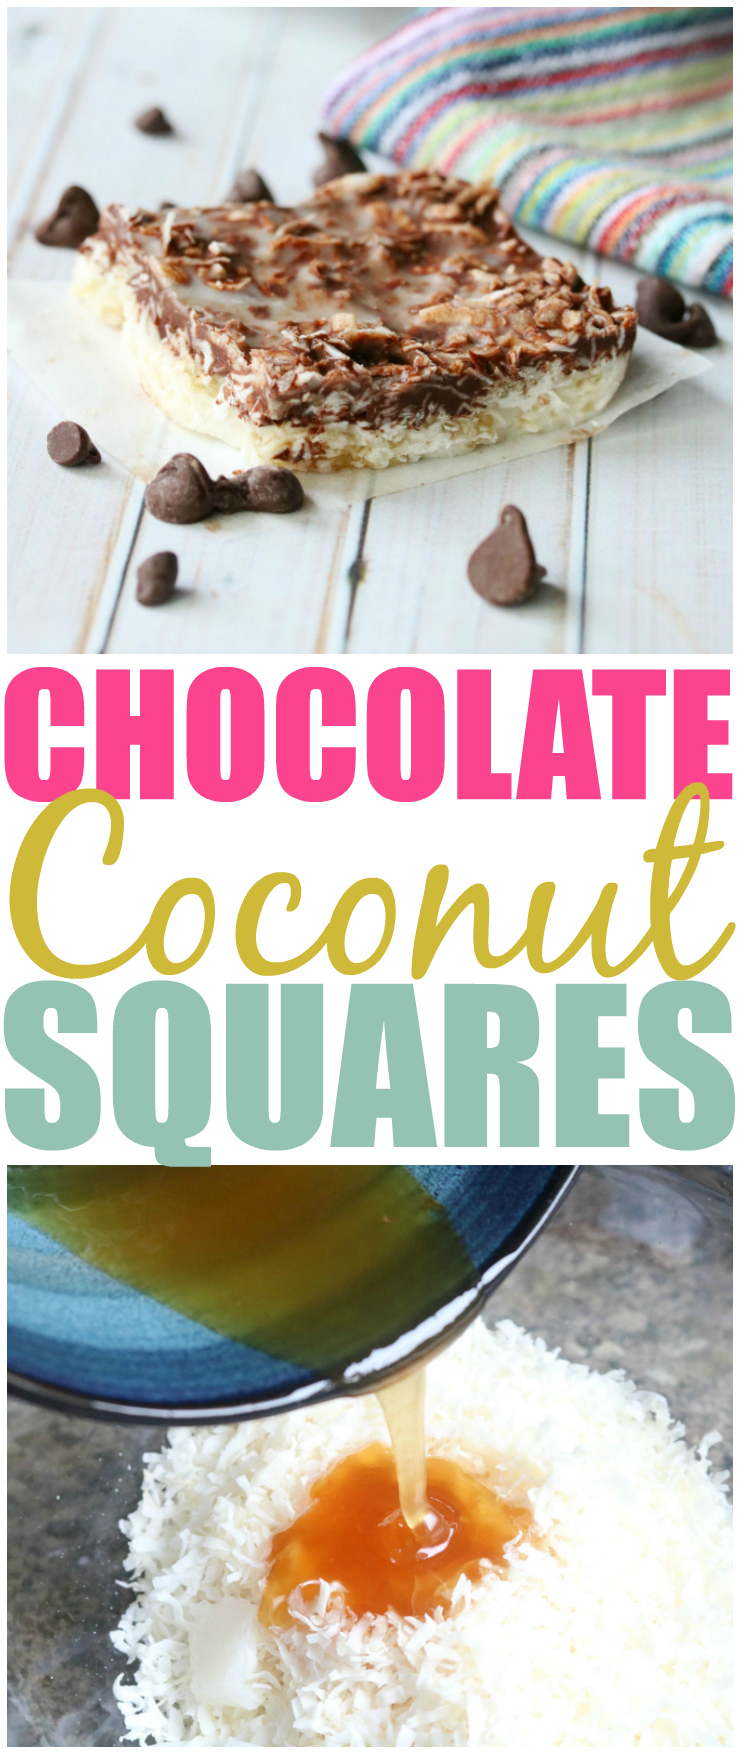 Chocolate Coconut Squares Pin